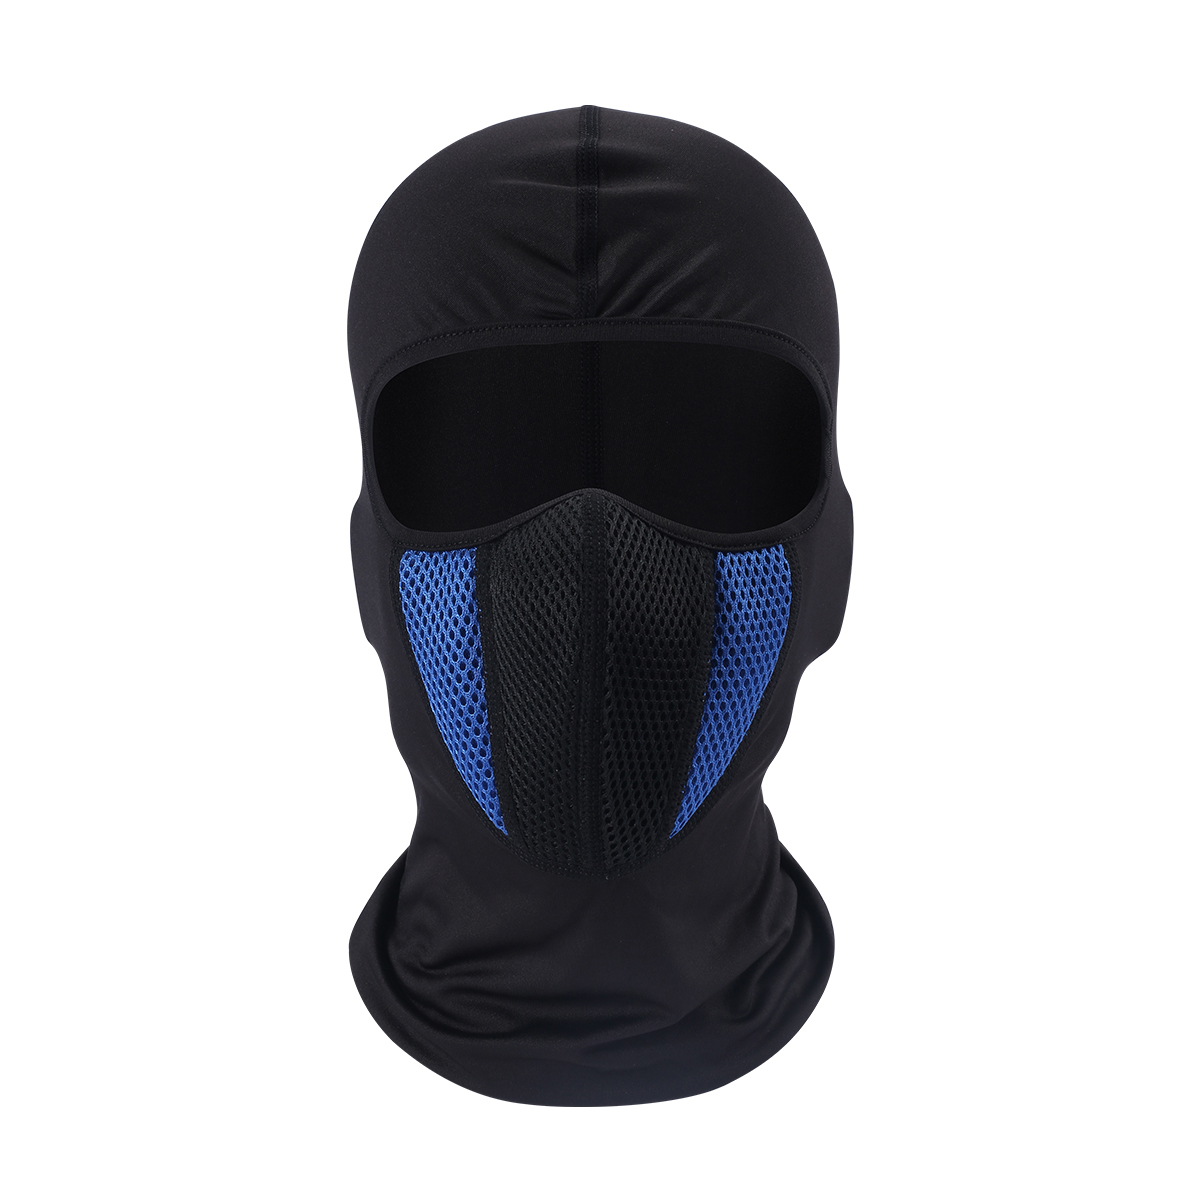 Balaclava Face Motorcycle Tactical Airsoft Cycling Bike Ski Army Helmet Protection Full Face Riding Brand image